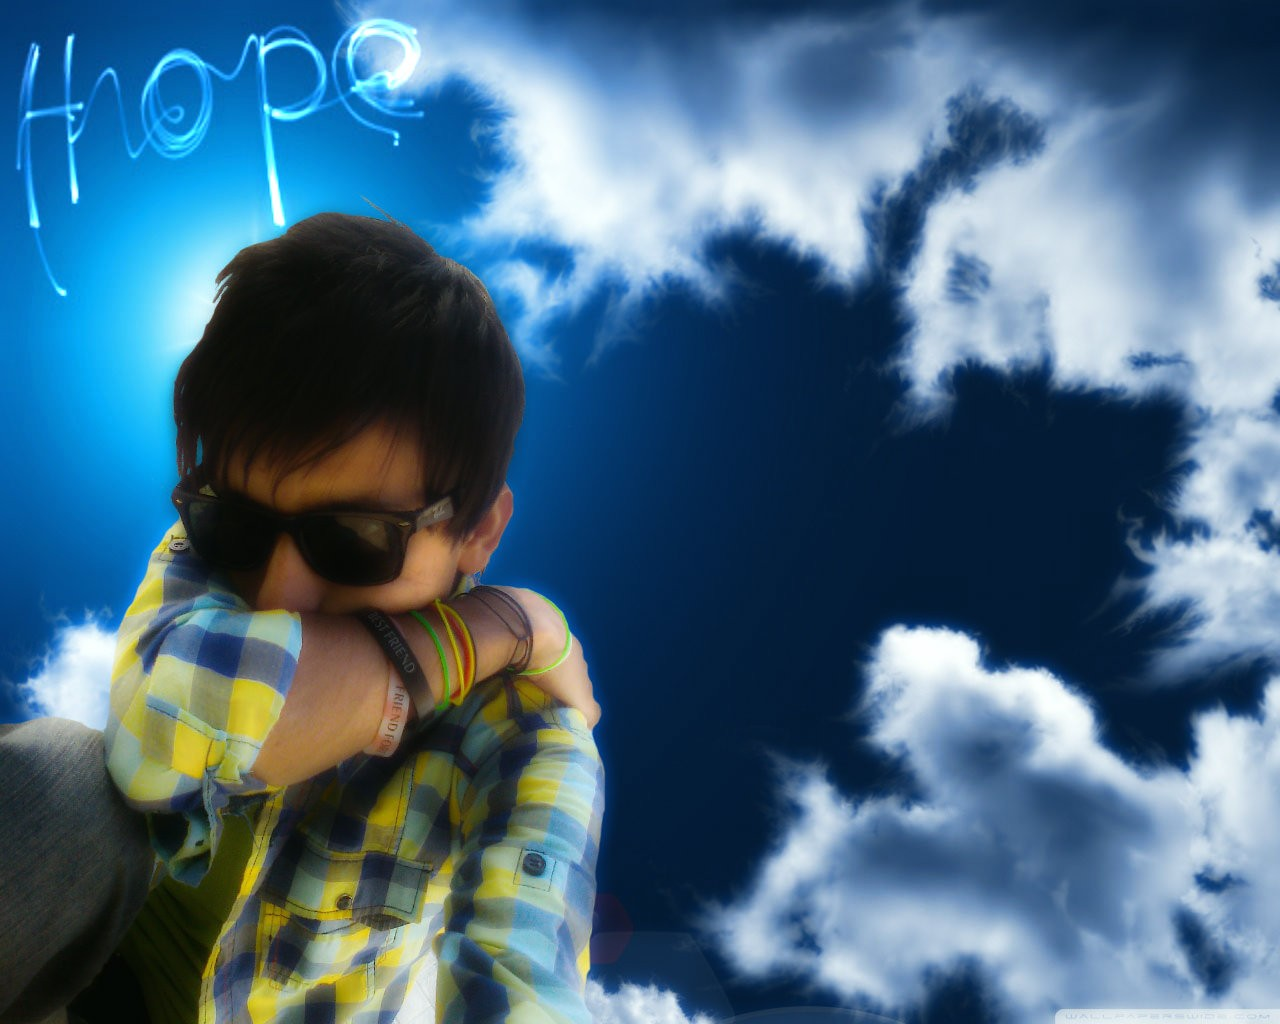 Emo Boys images Emo Boys Photo HD wallpaper and background 1280x1024